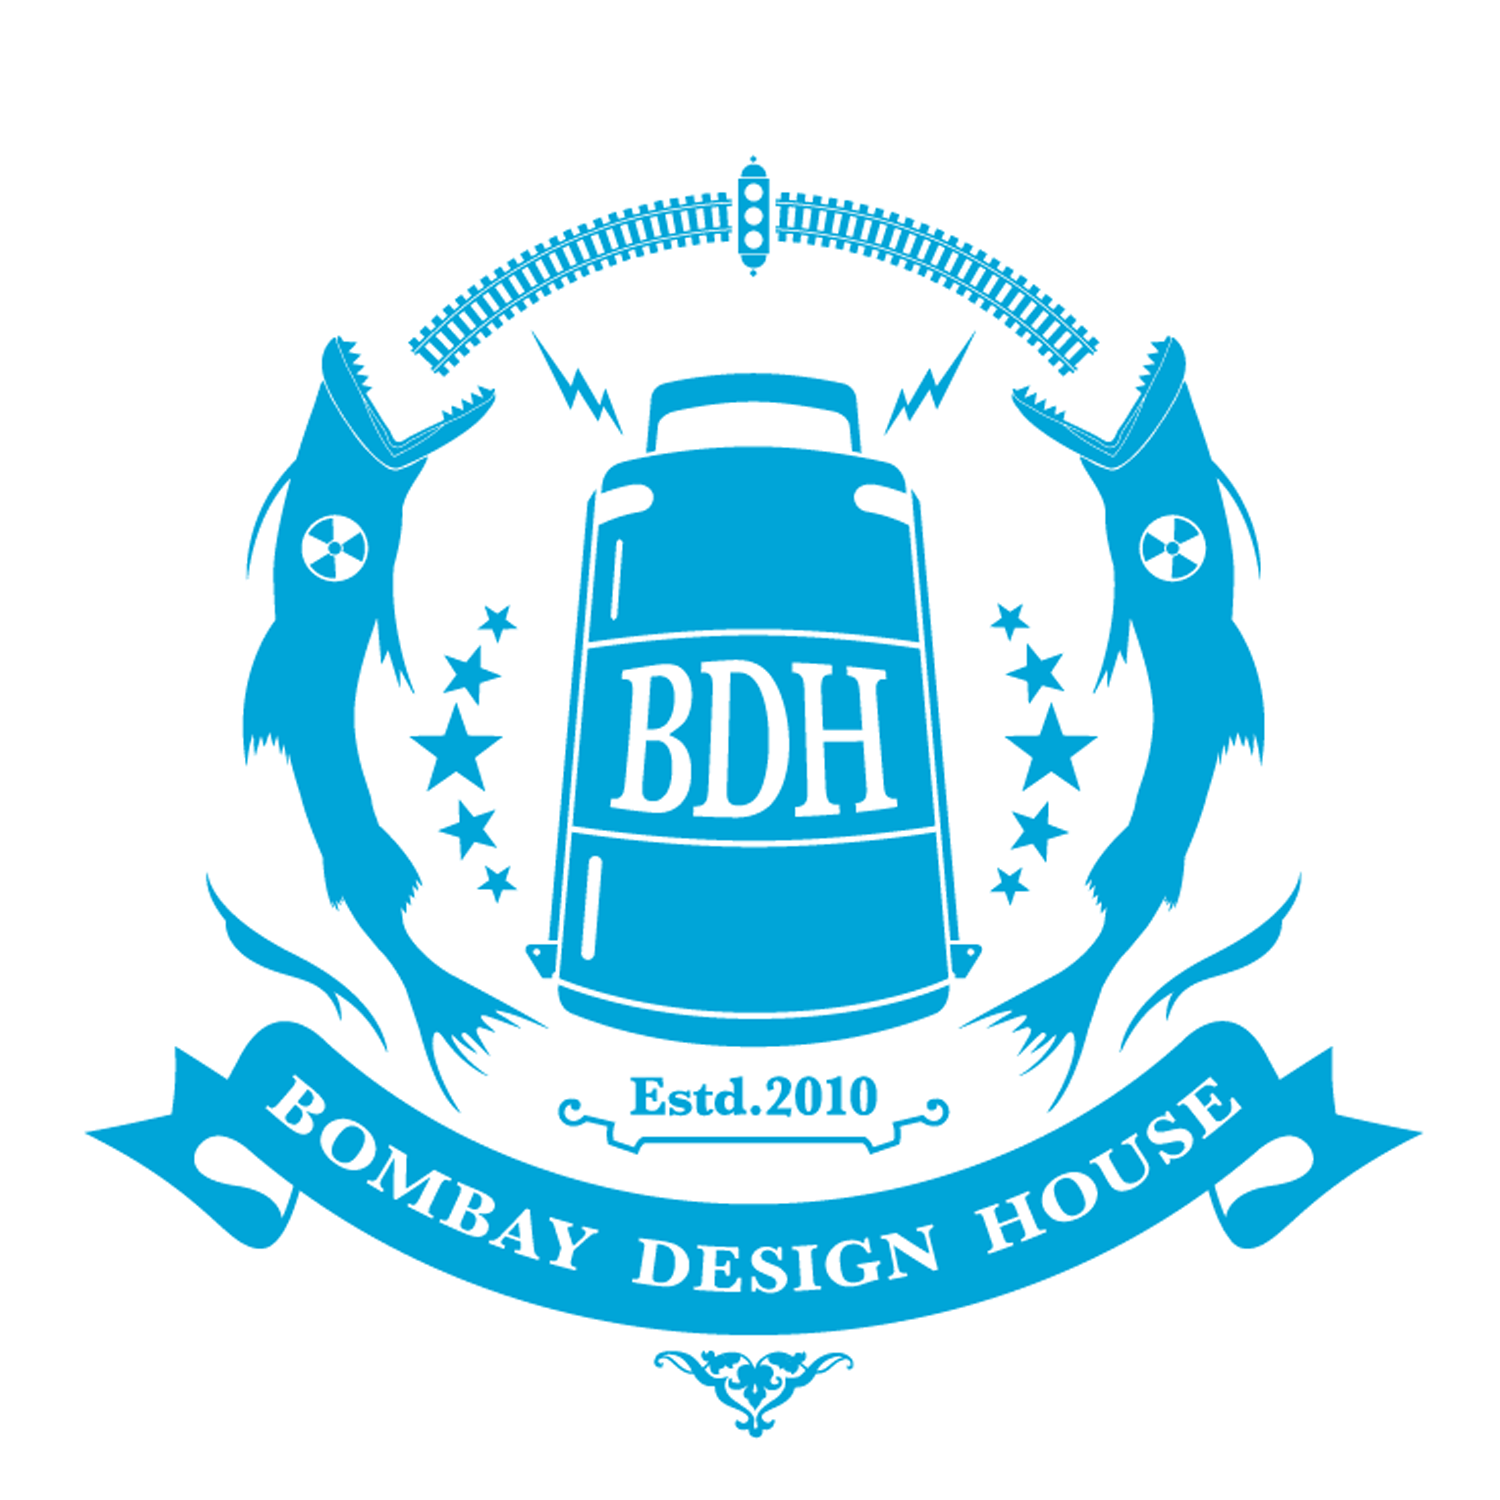 Bdh logo blue 01 square crop